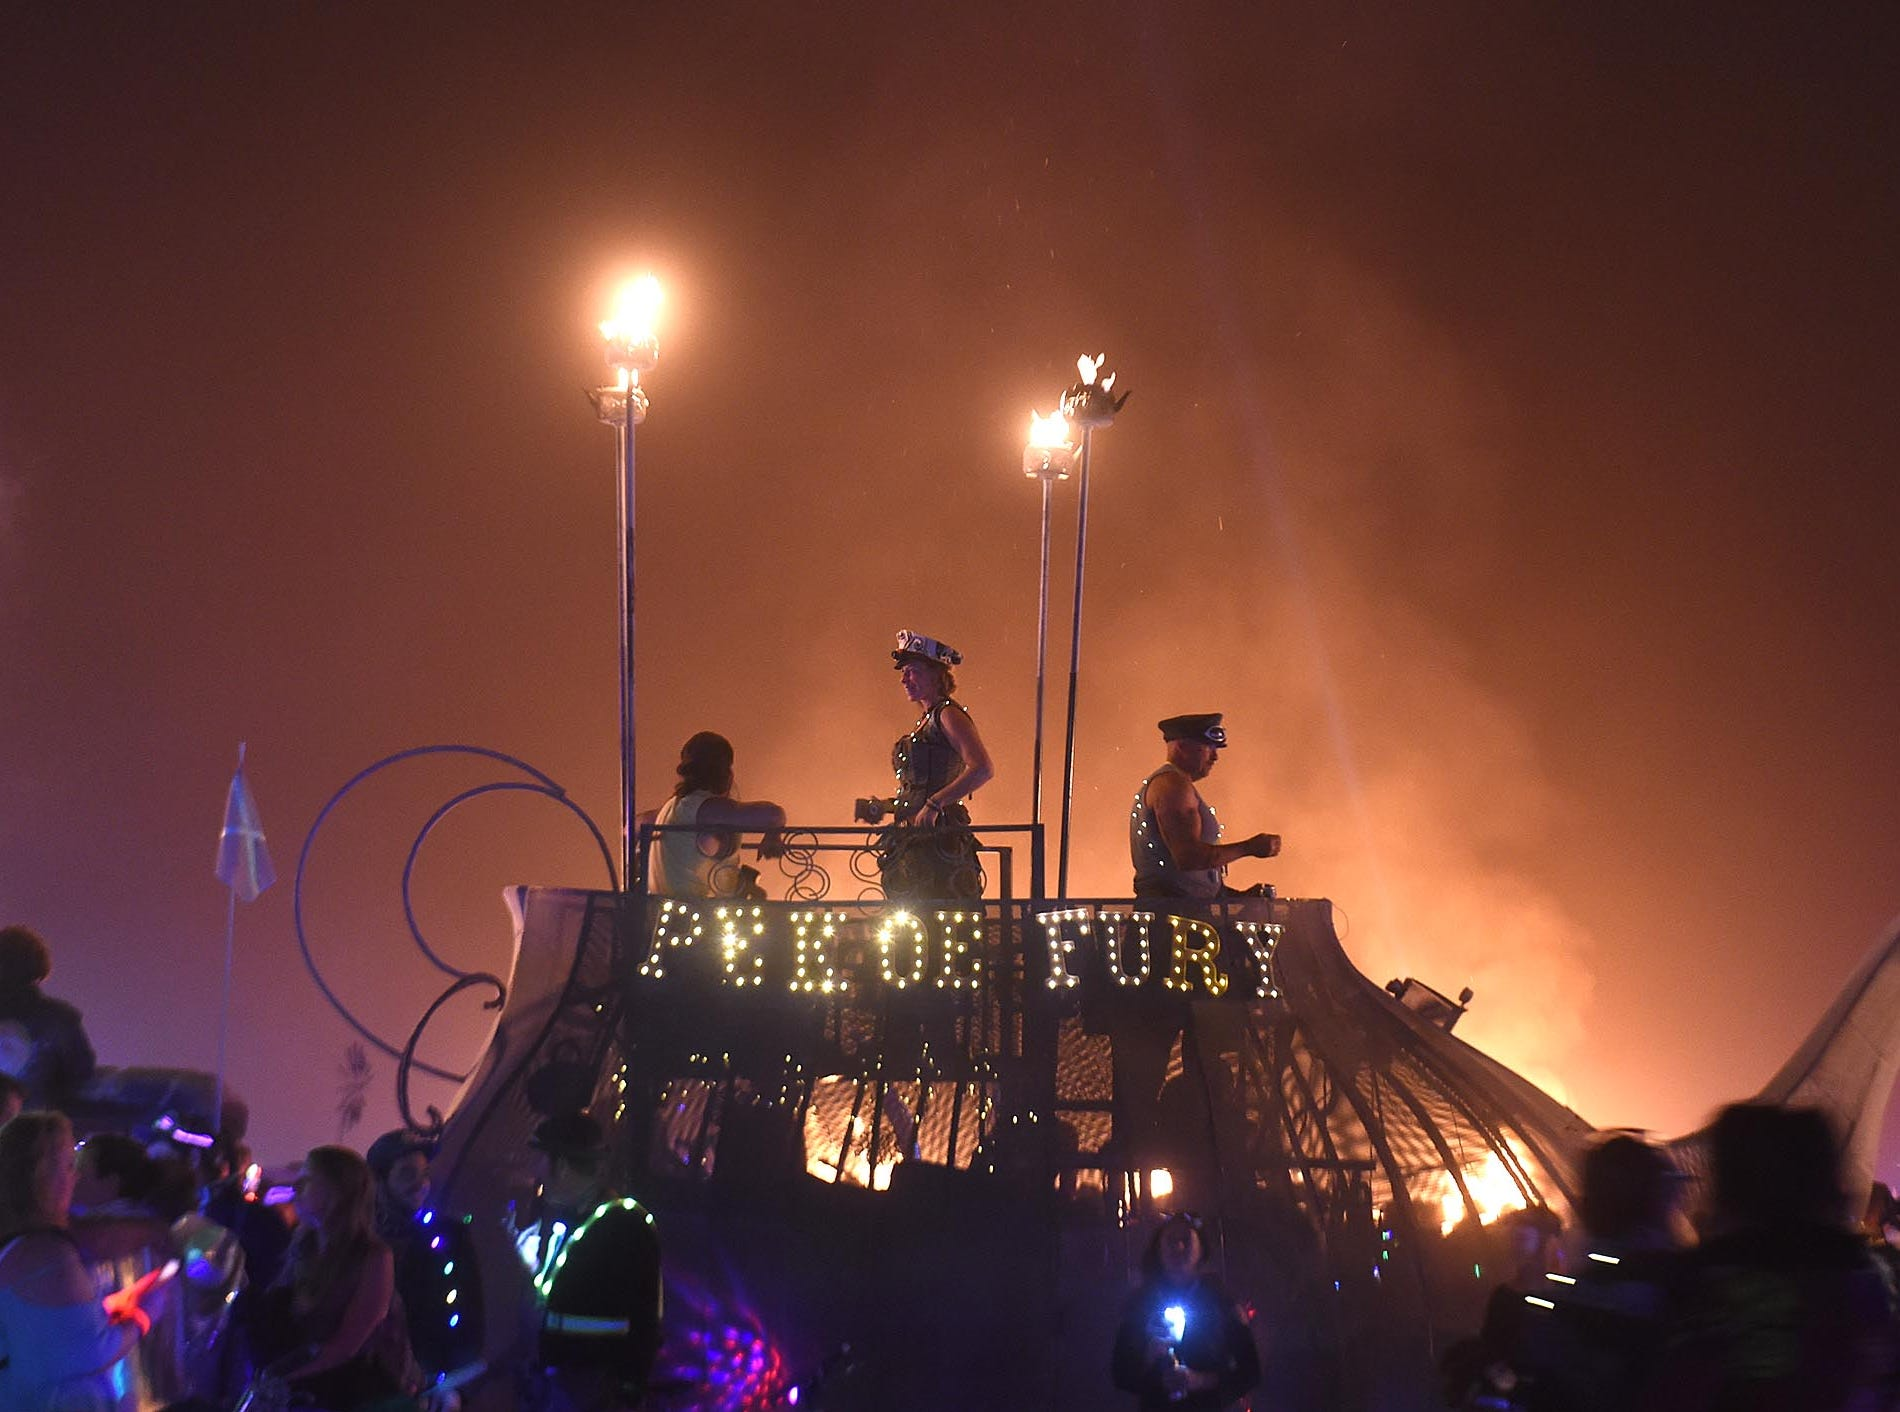 Images from Burning Man 2018.